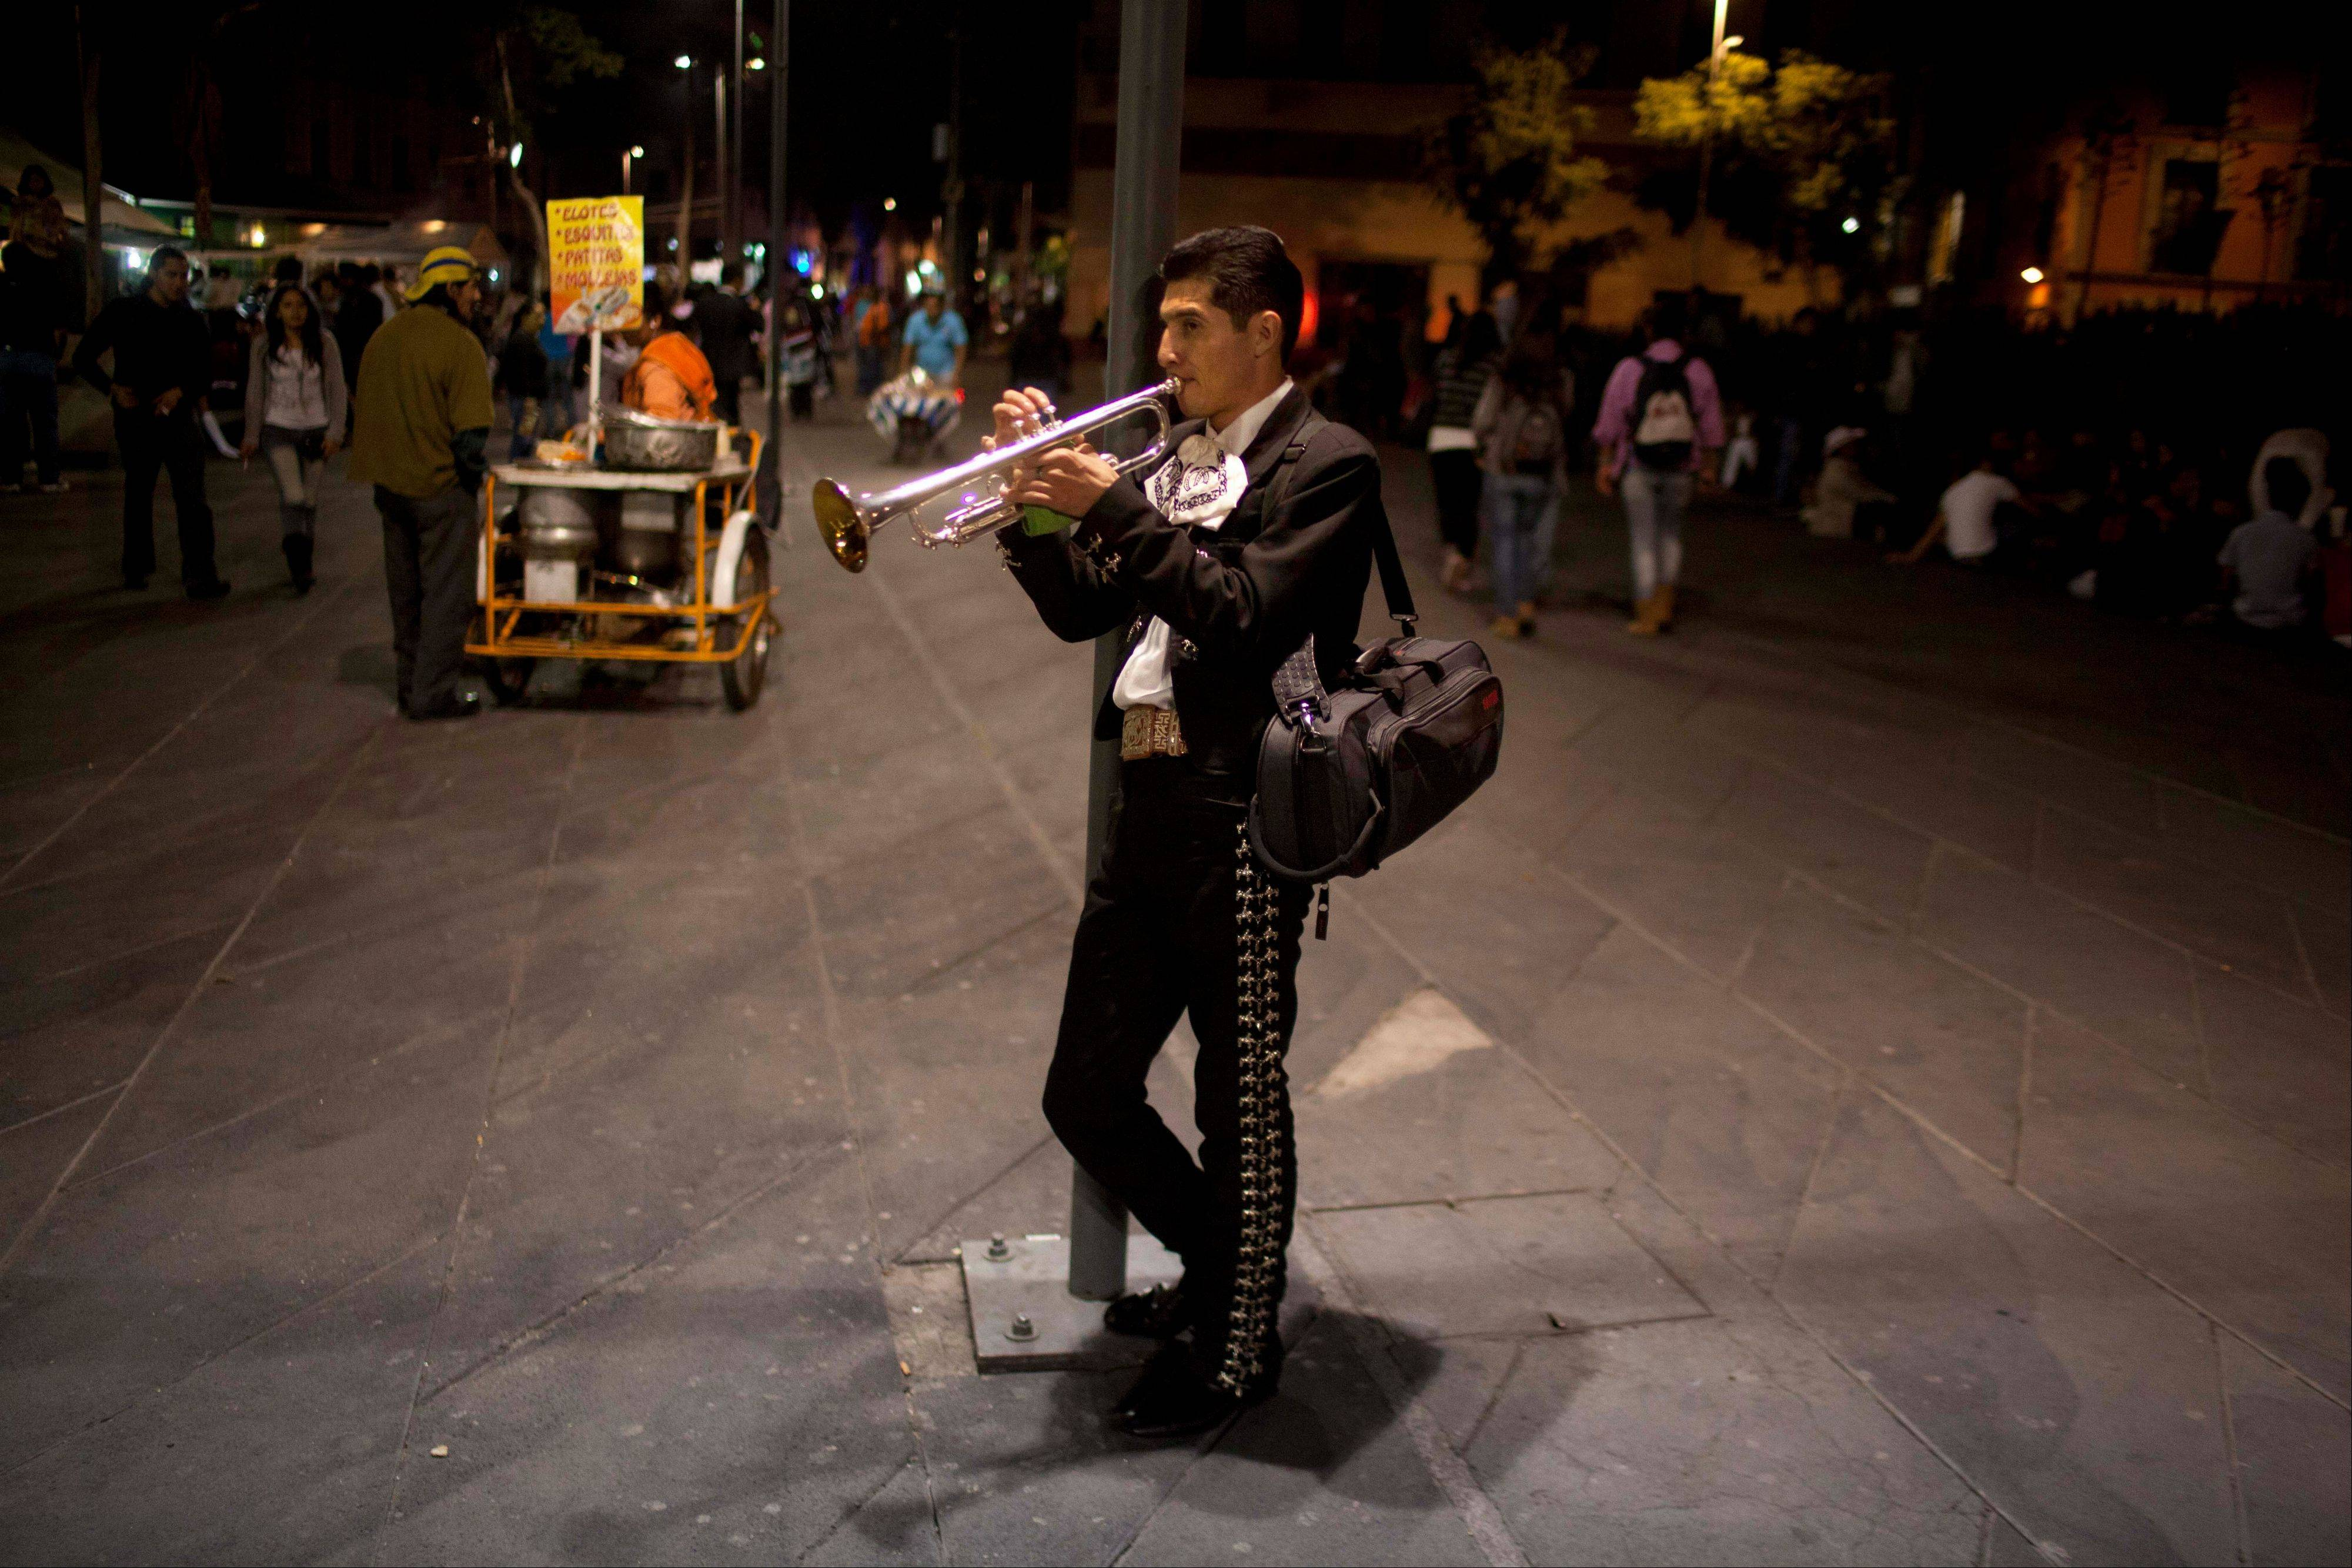 In this October 2012 photo, professor at the Mariachi School Ollin Yoliztli, Eduardo Sanchez Ortiz, practices as he waits for clients at Plaza Garibaldi in Mexico City. The new mariachi school in Mexico City is seeking to revive a music that�s lost ground over the years. The school, whose name means life and movement in indigenous Nahautl, teaches folk bands how to play professionally while grooming a new generation of songwriters and composers.